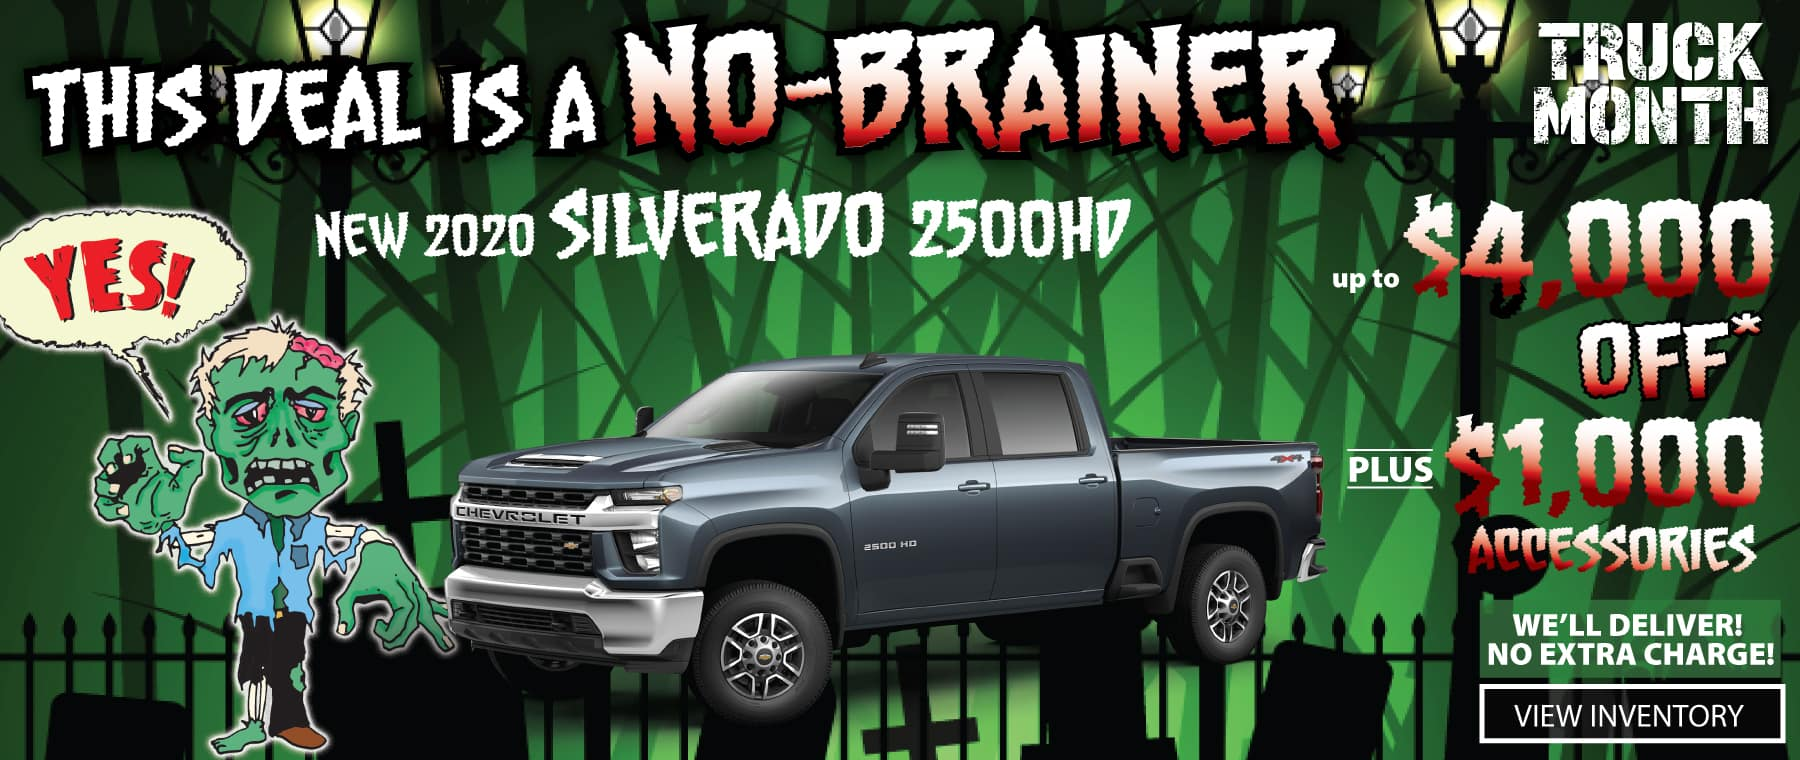 RACP68399-1-KB-1800x760_2020_Silverado2500HD_oct20